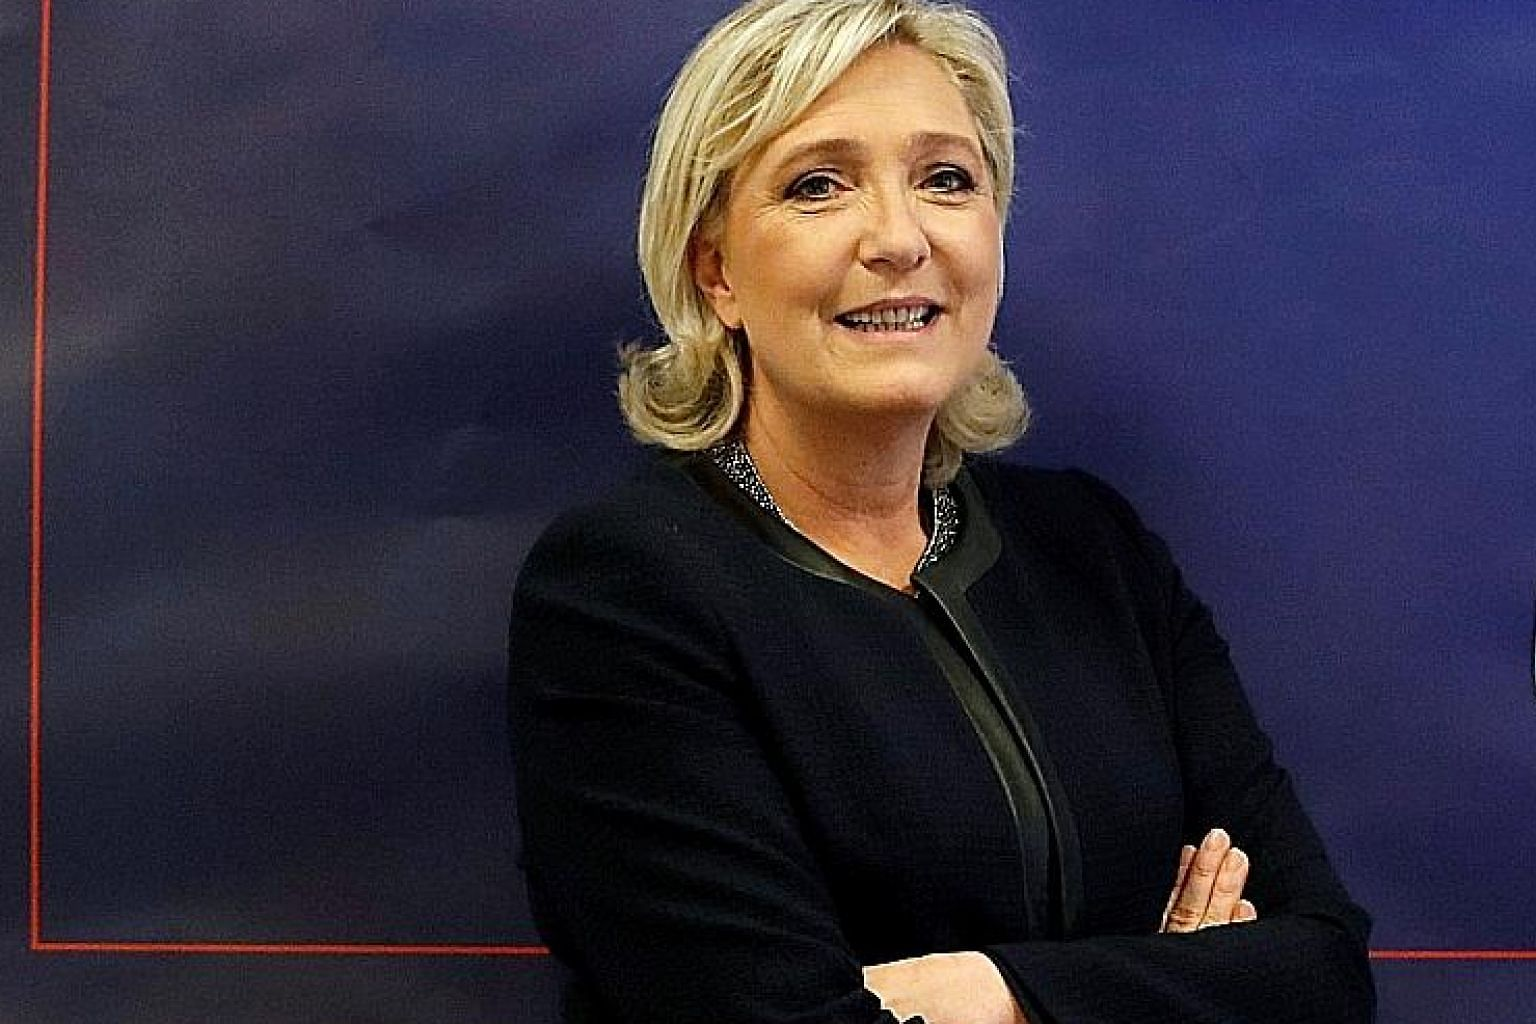 Ms Le Pen is accused of having paid her chief political counsellor and her bodyguard on the pretence that they were parliamentary assistants, when they were nothing of the sort.